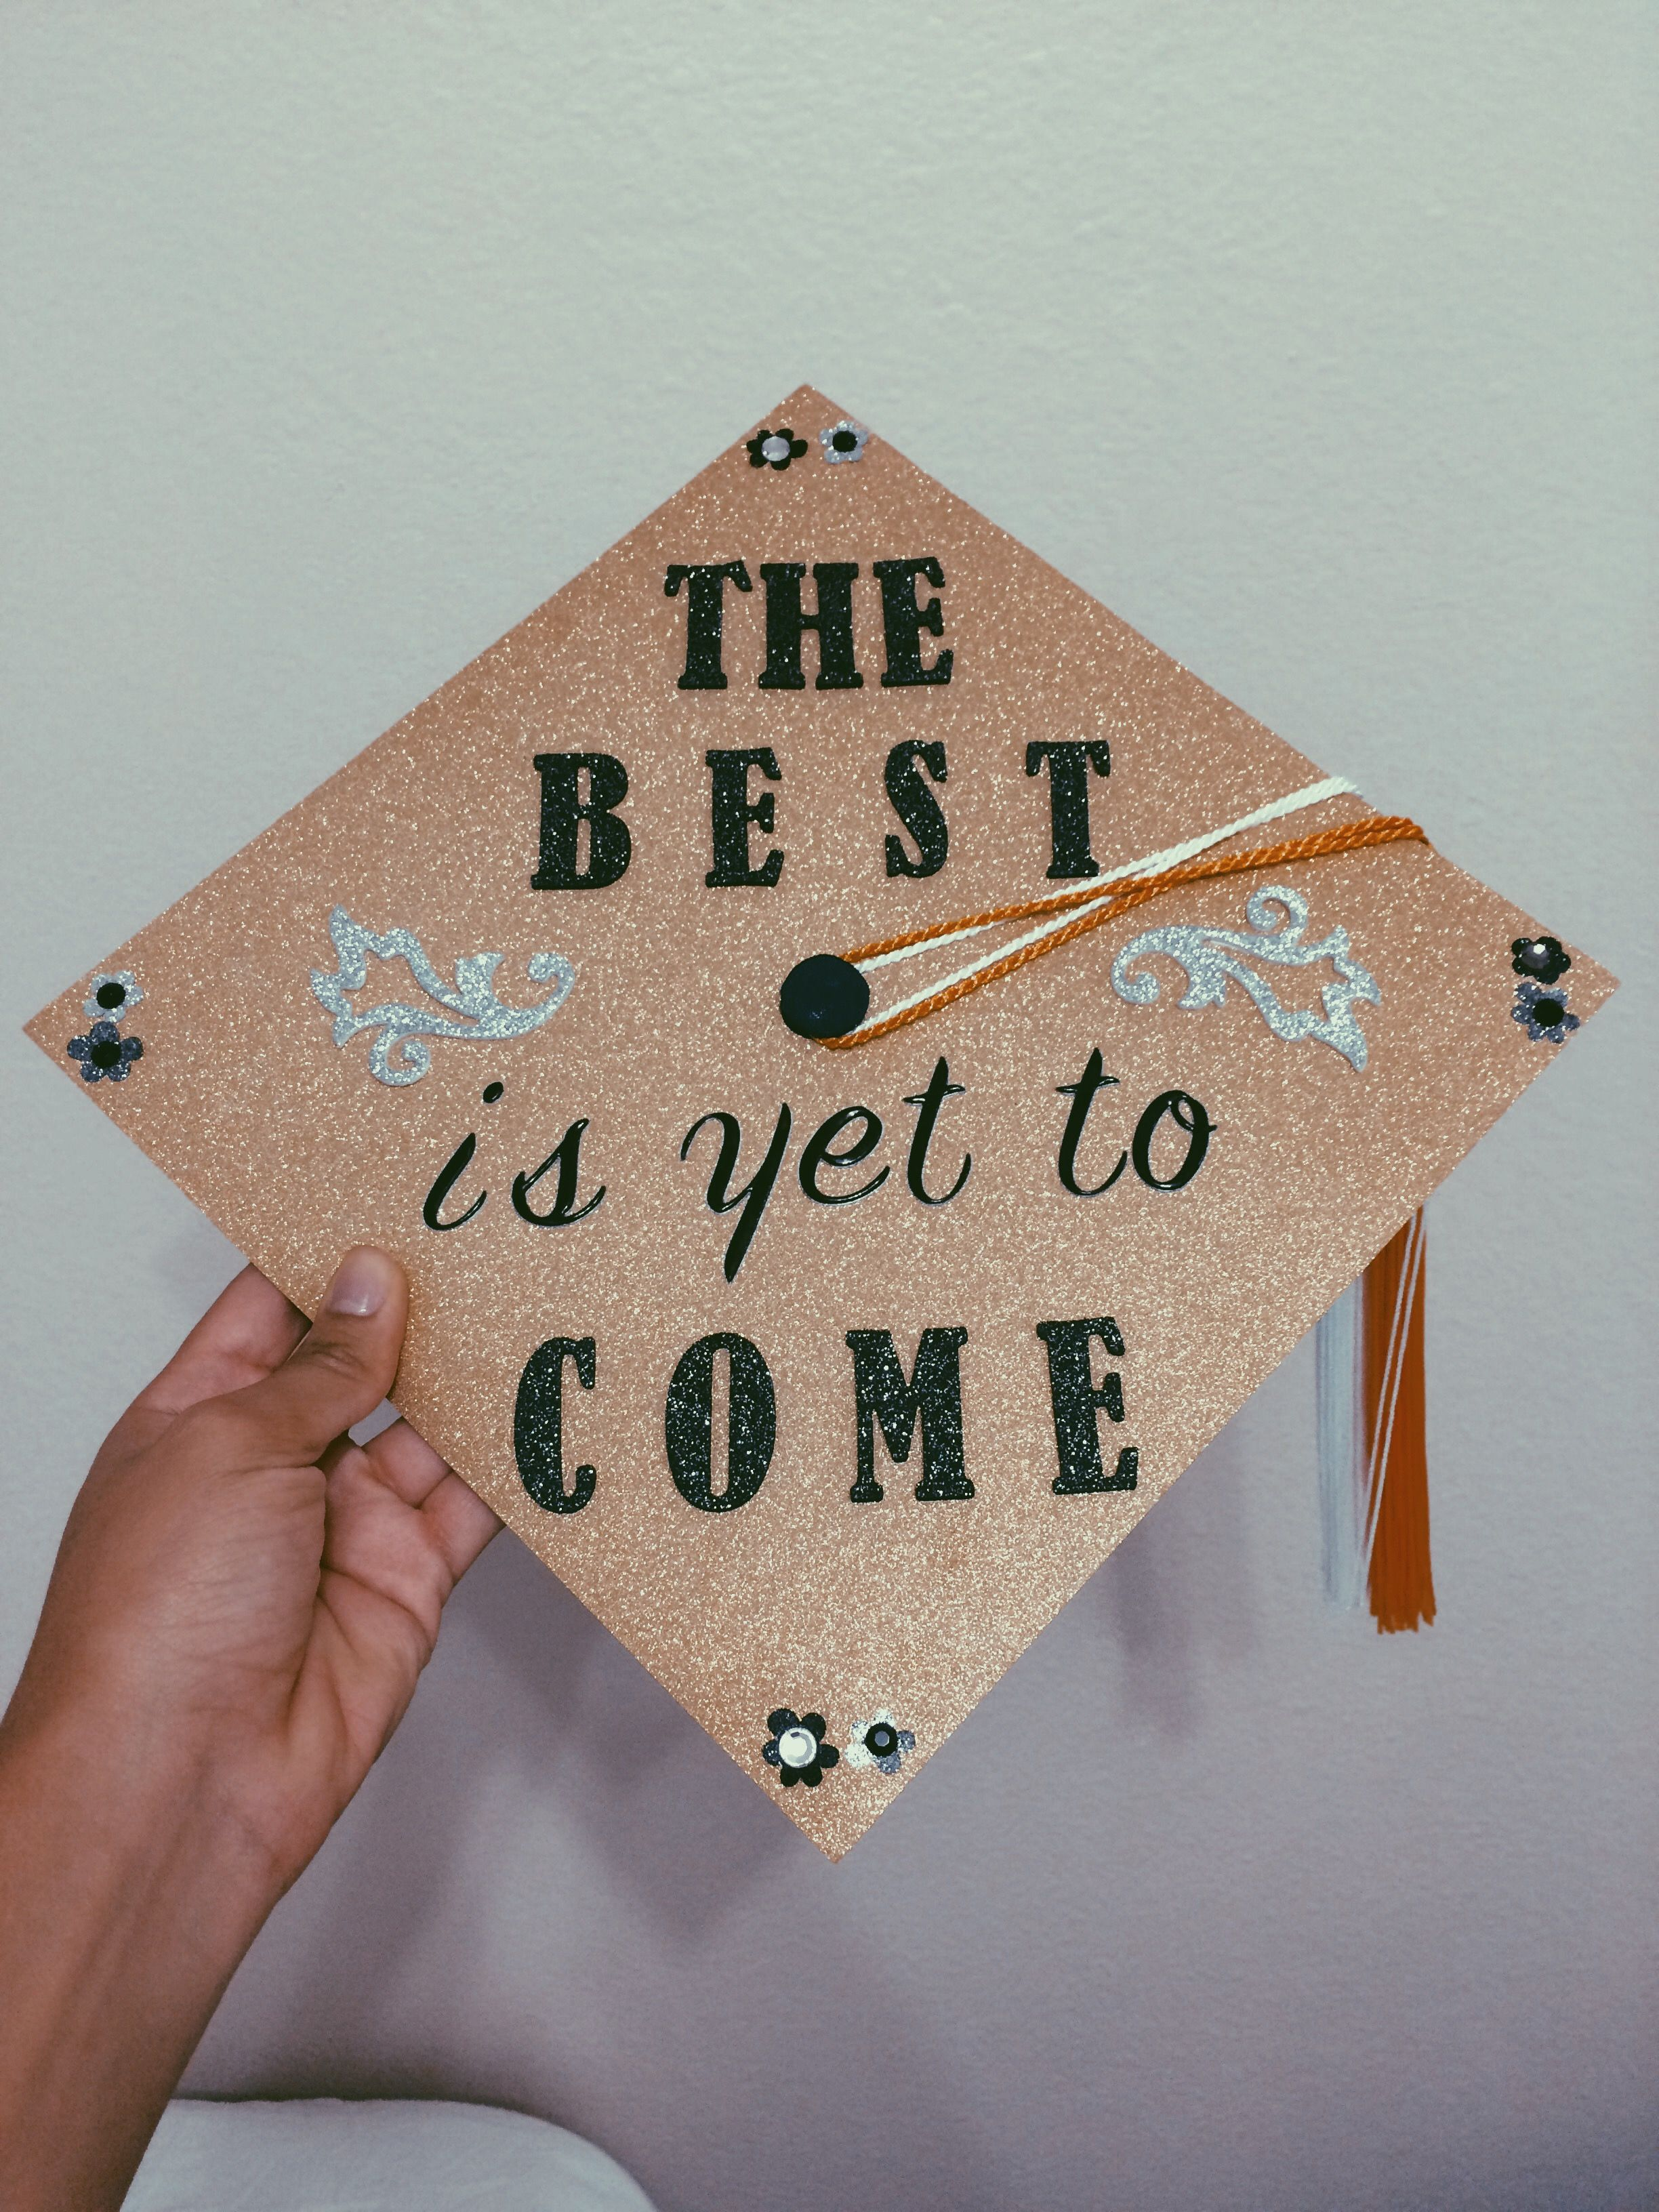 Medium Of How To Decorate A Graduation Cap